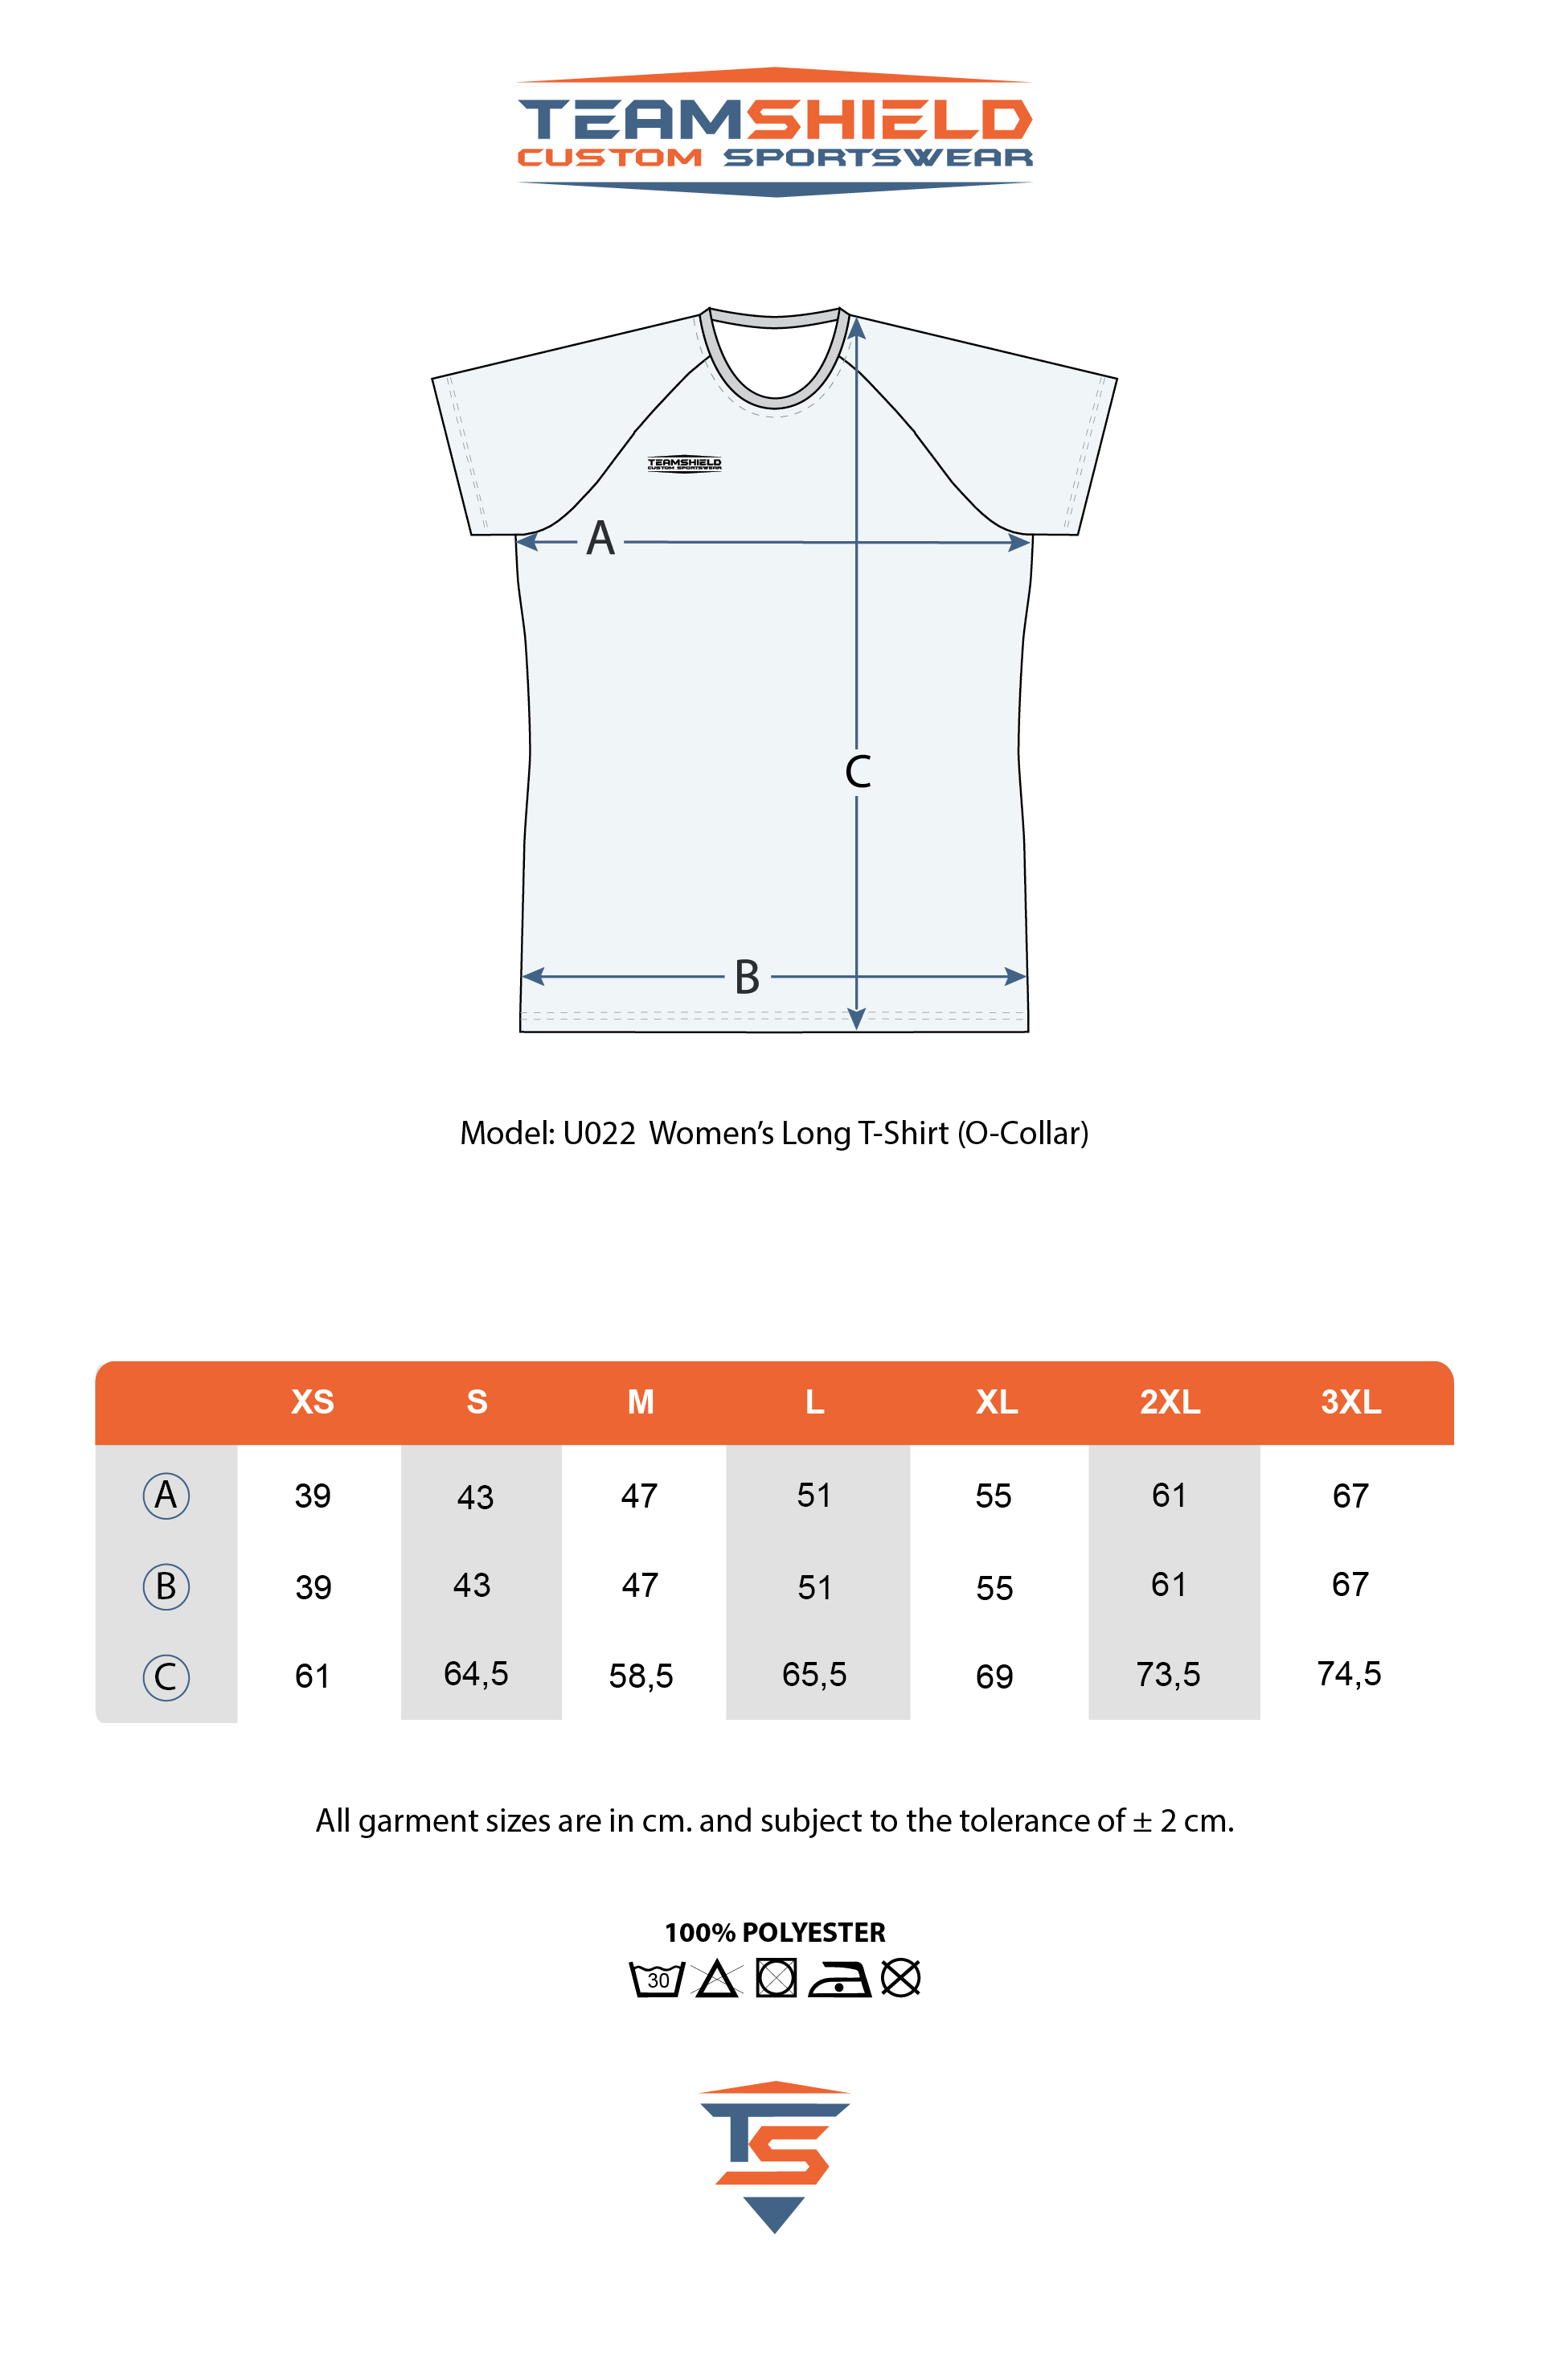 Teamshield-Custom-Teamwear-Sizechart-U022-Sublimation-Shirt-Women-Regular-Fit